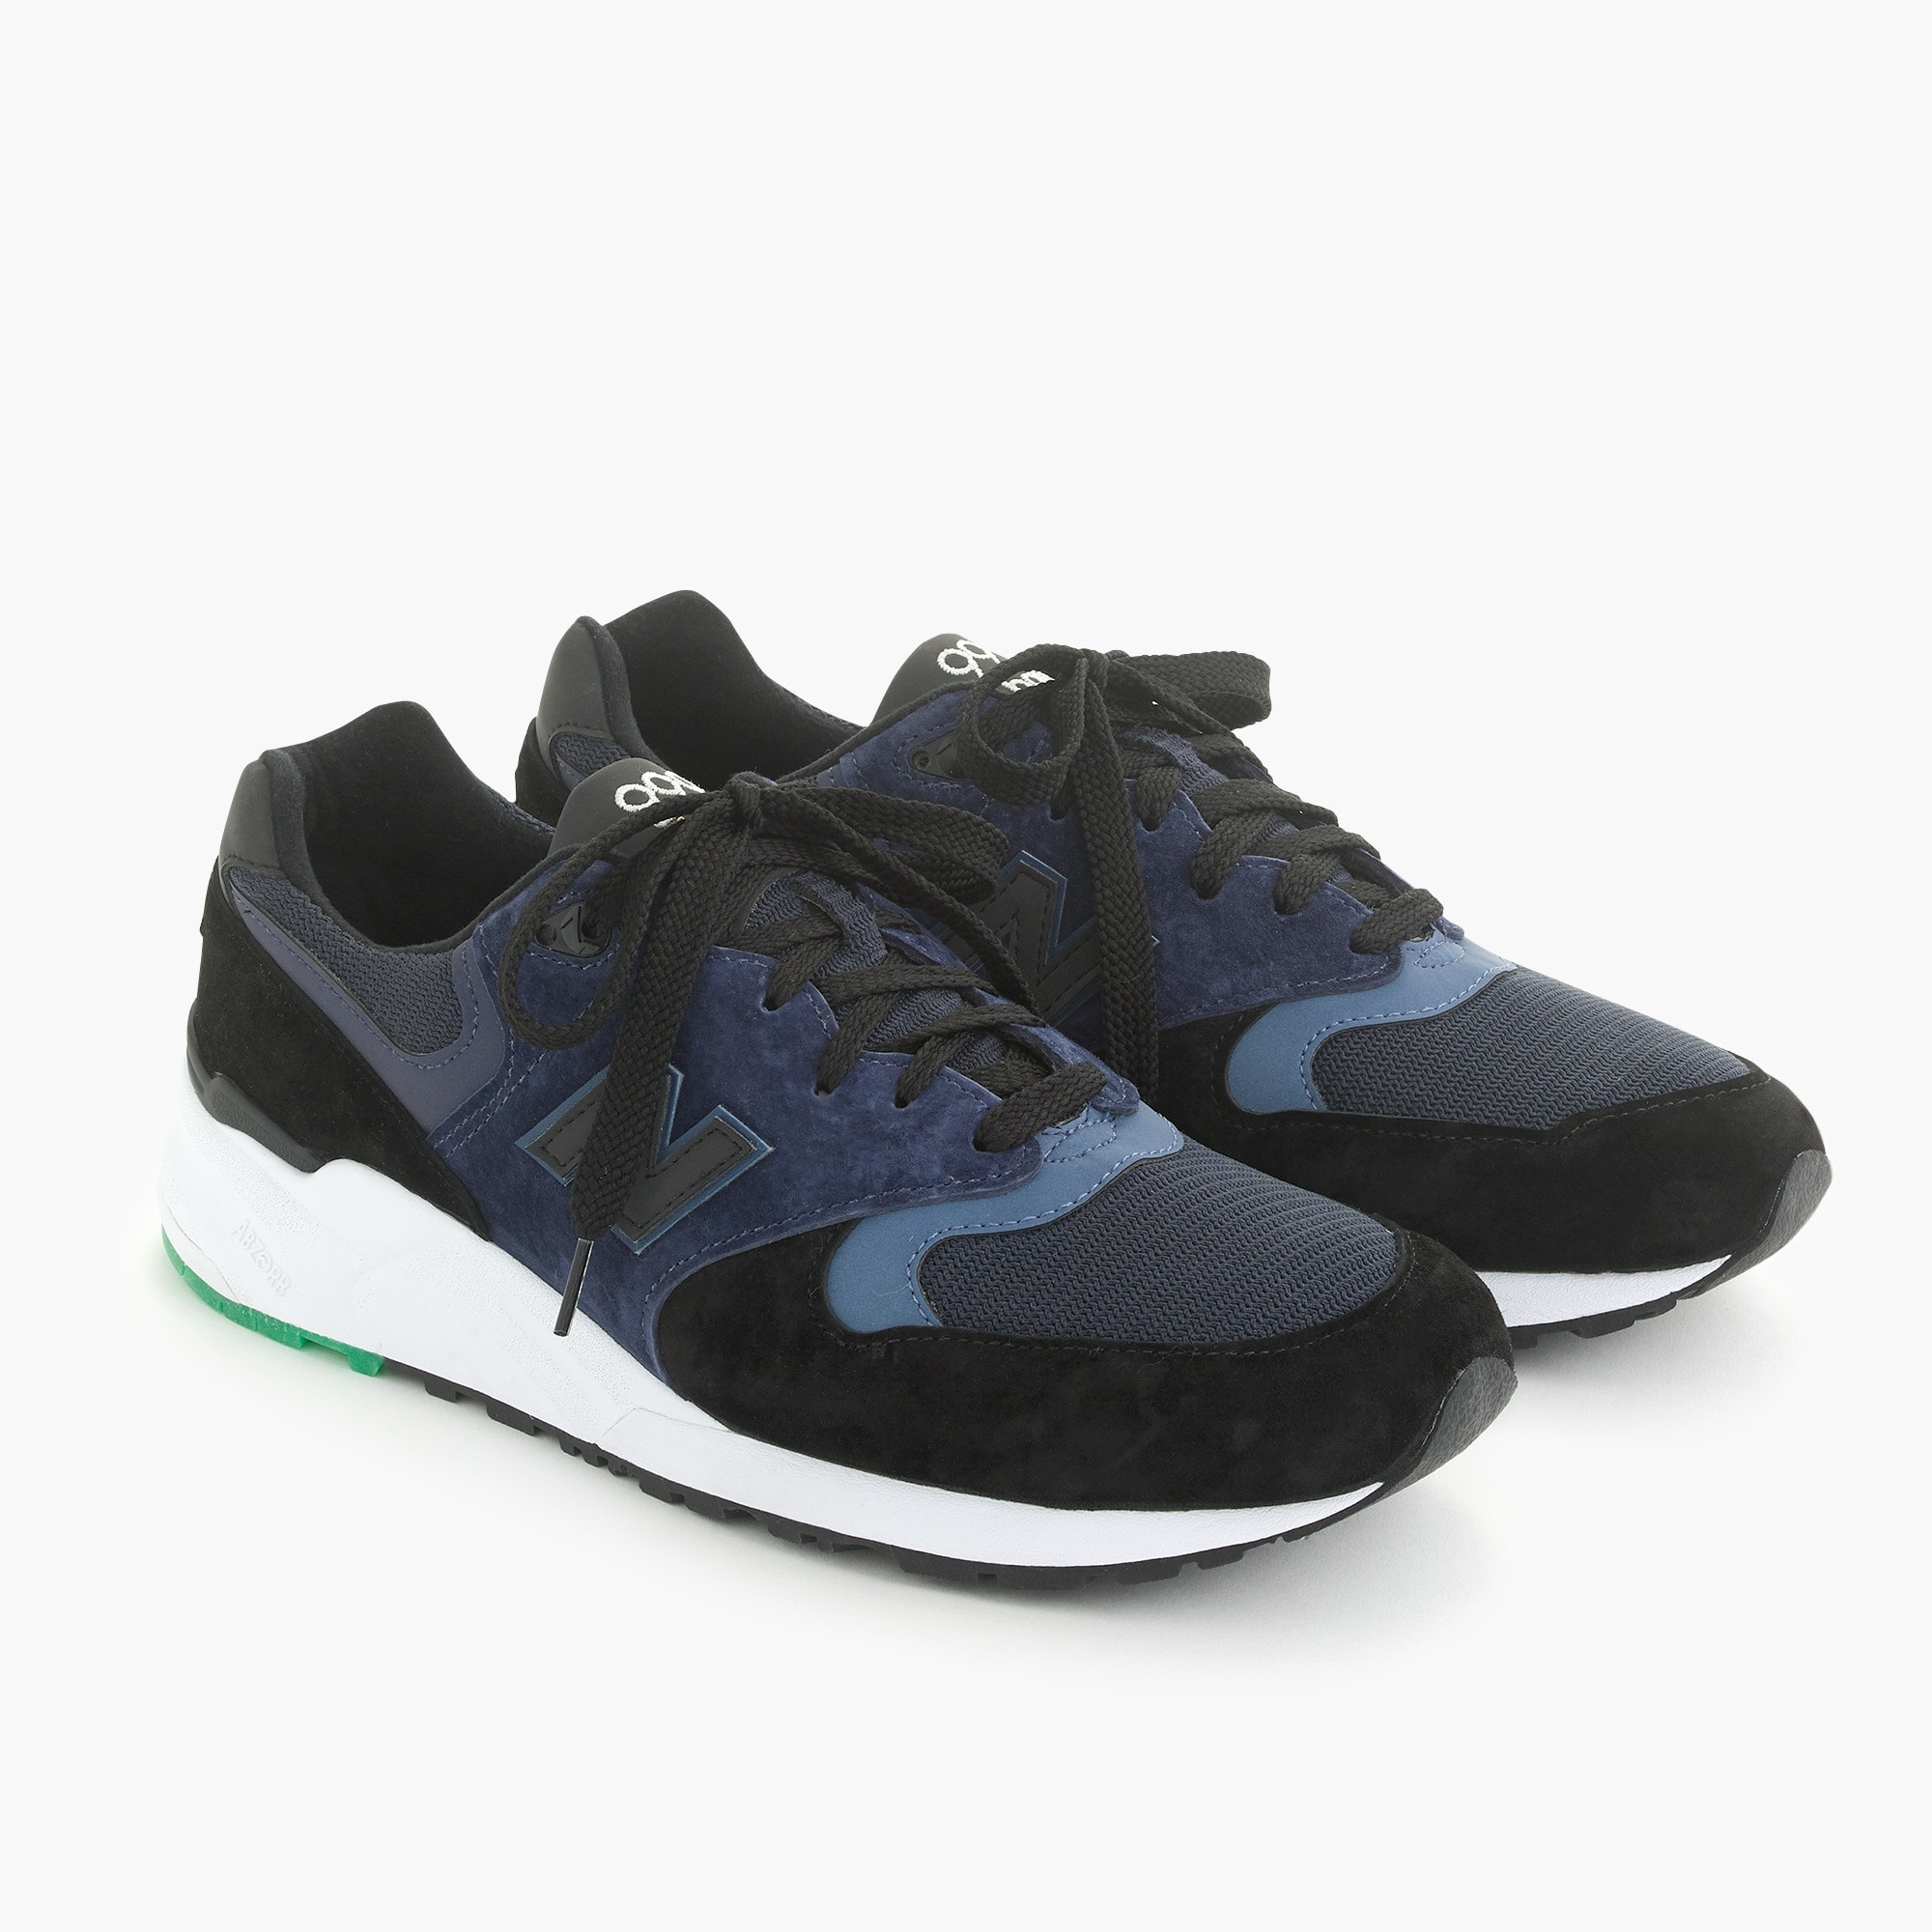 New Balance® X J.Crew 999 Night Sky sneakers